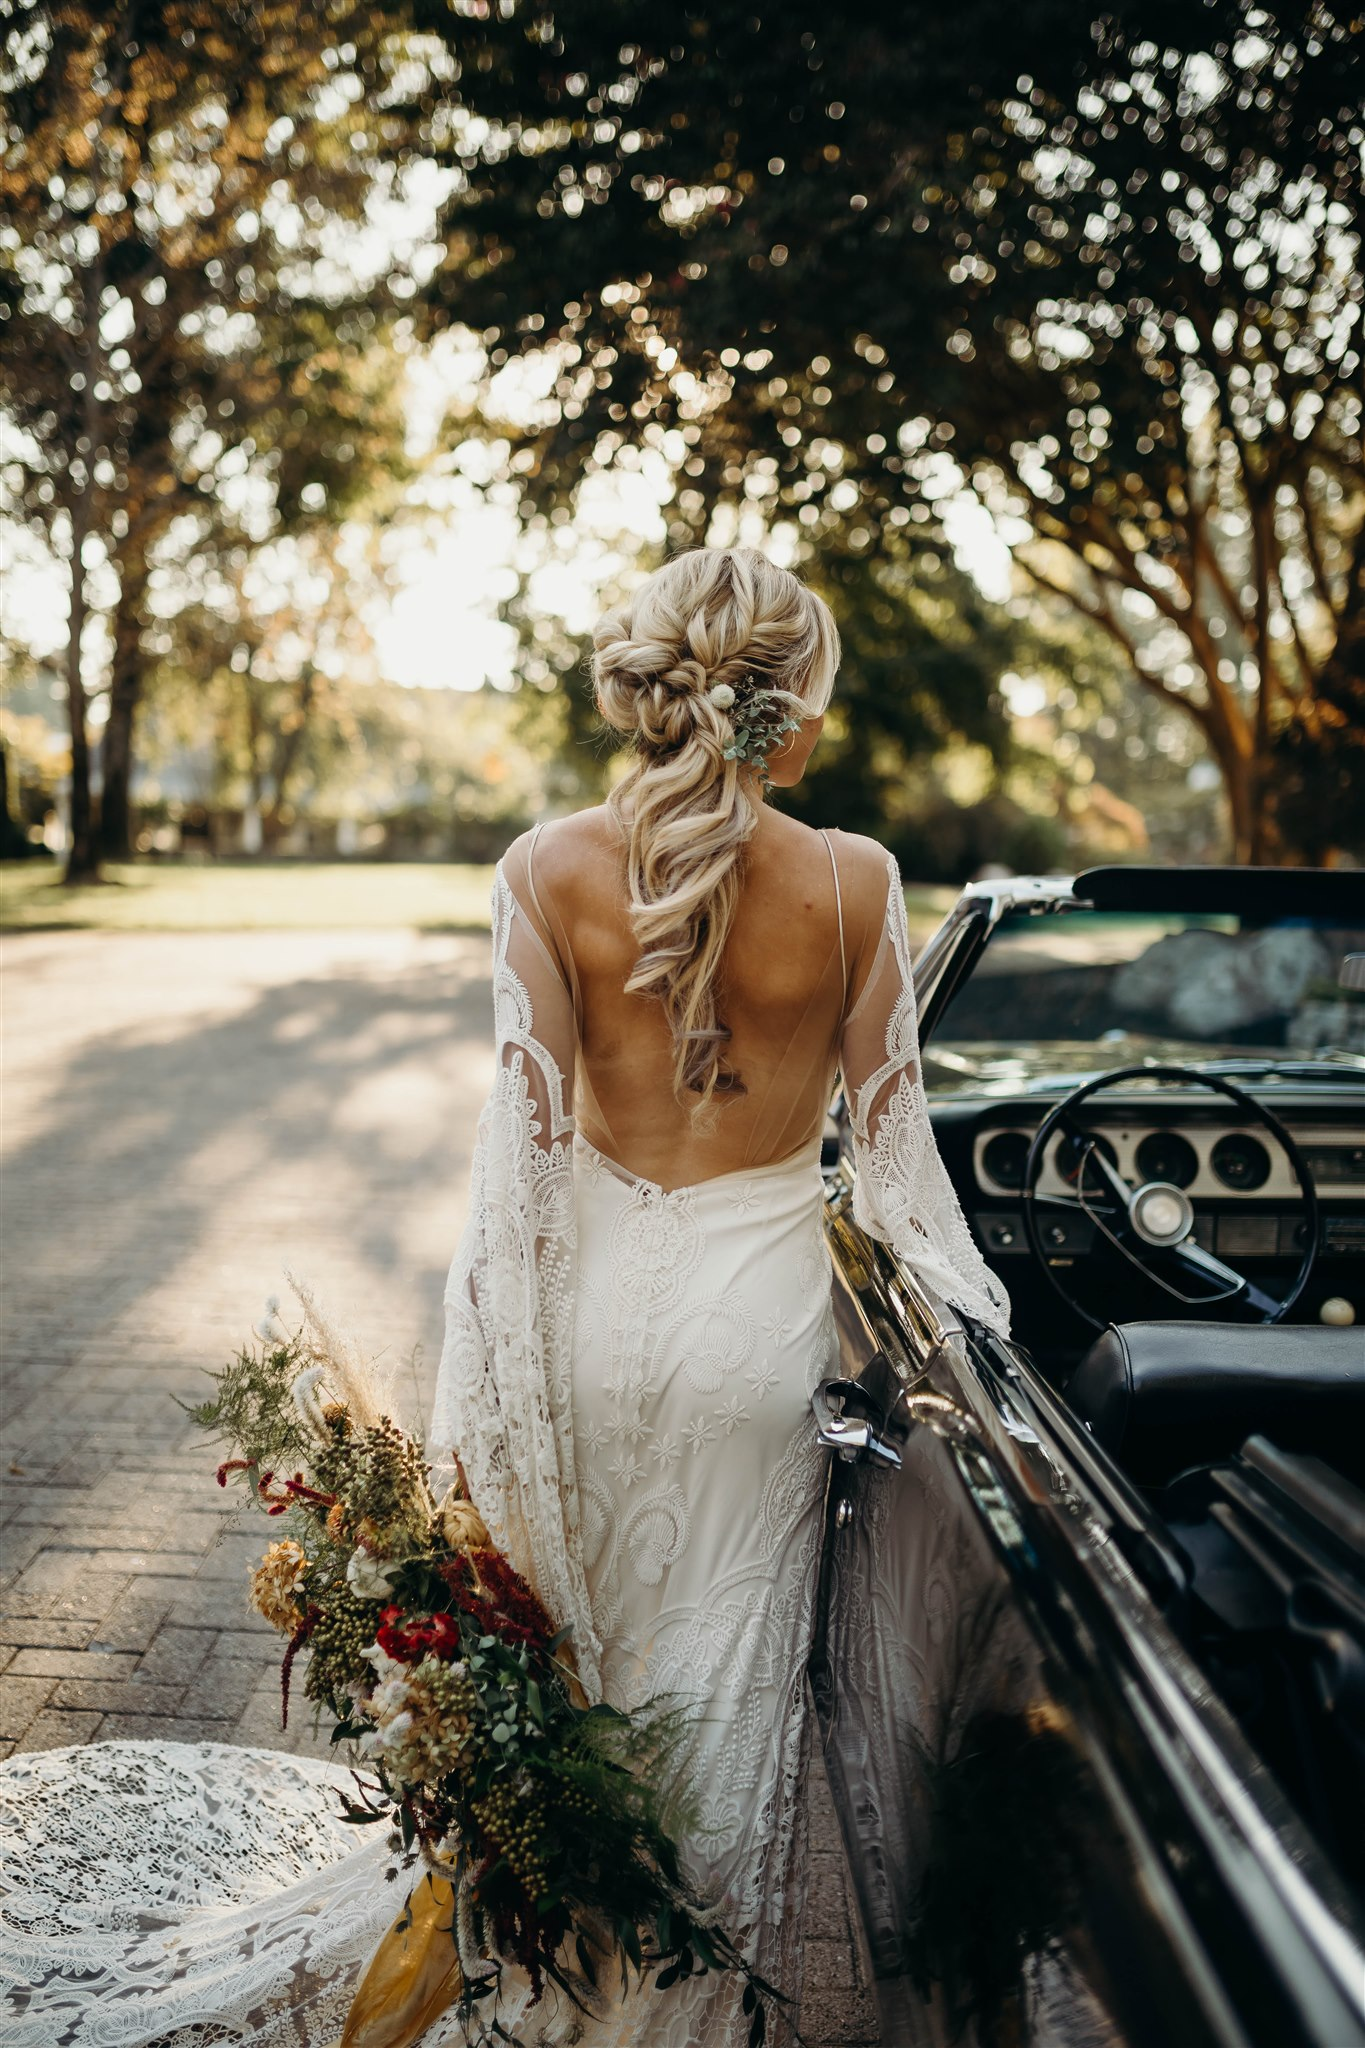 Boho Wedding Hair: Boho Winter Wedding Styled Shoot by Riley Gardner Photography featured on Nashville Bride Guide